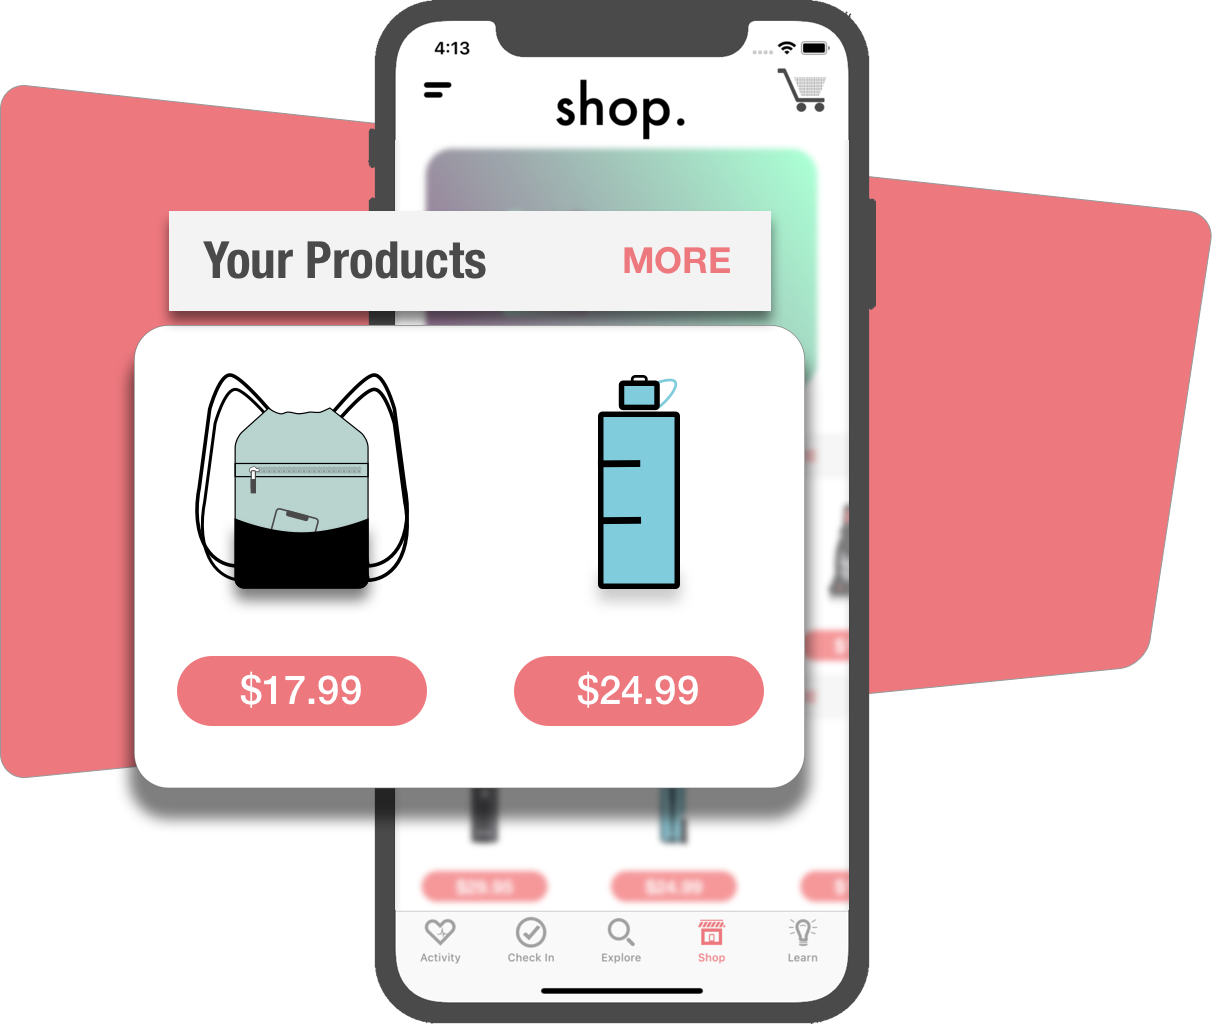 NOT YOUR AVERAGE MARKETPLACE - GymB is about motivating users to hit the gym by rewarding them for doing so. The credit earned is redeemed through the online store in the app. Sellers like you can offer products that allow credit to be used towards the initial purchase.